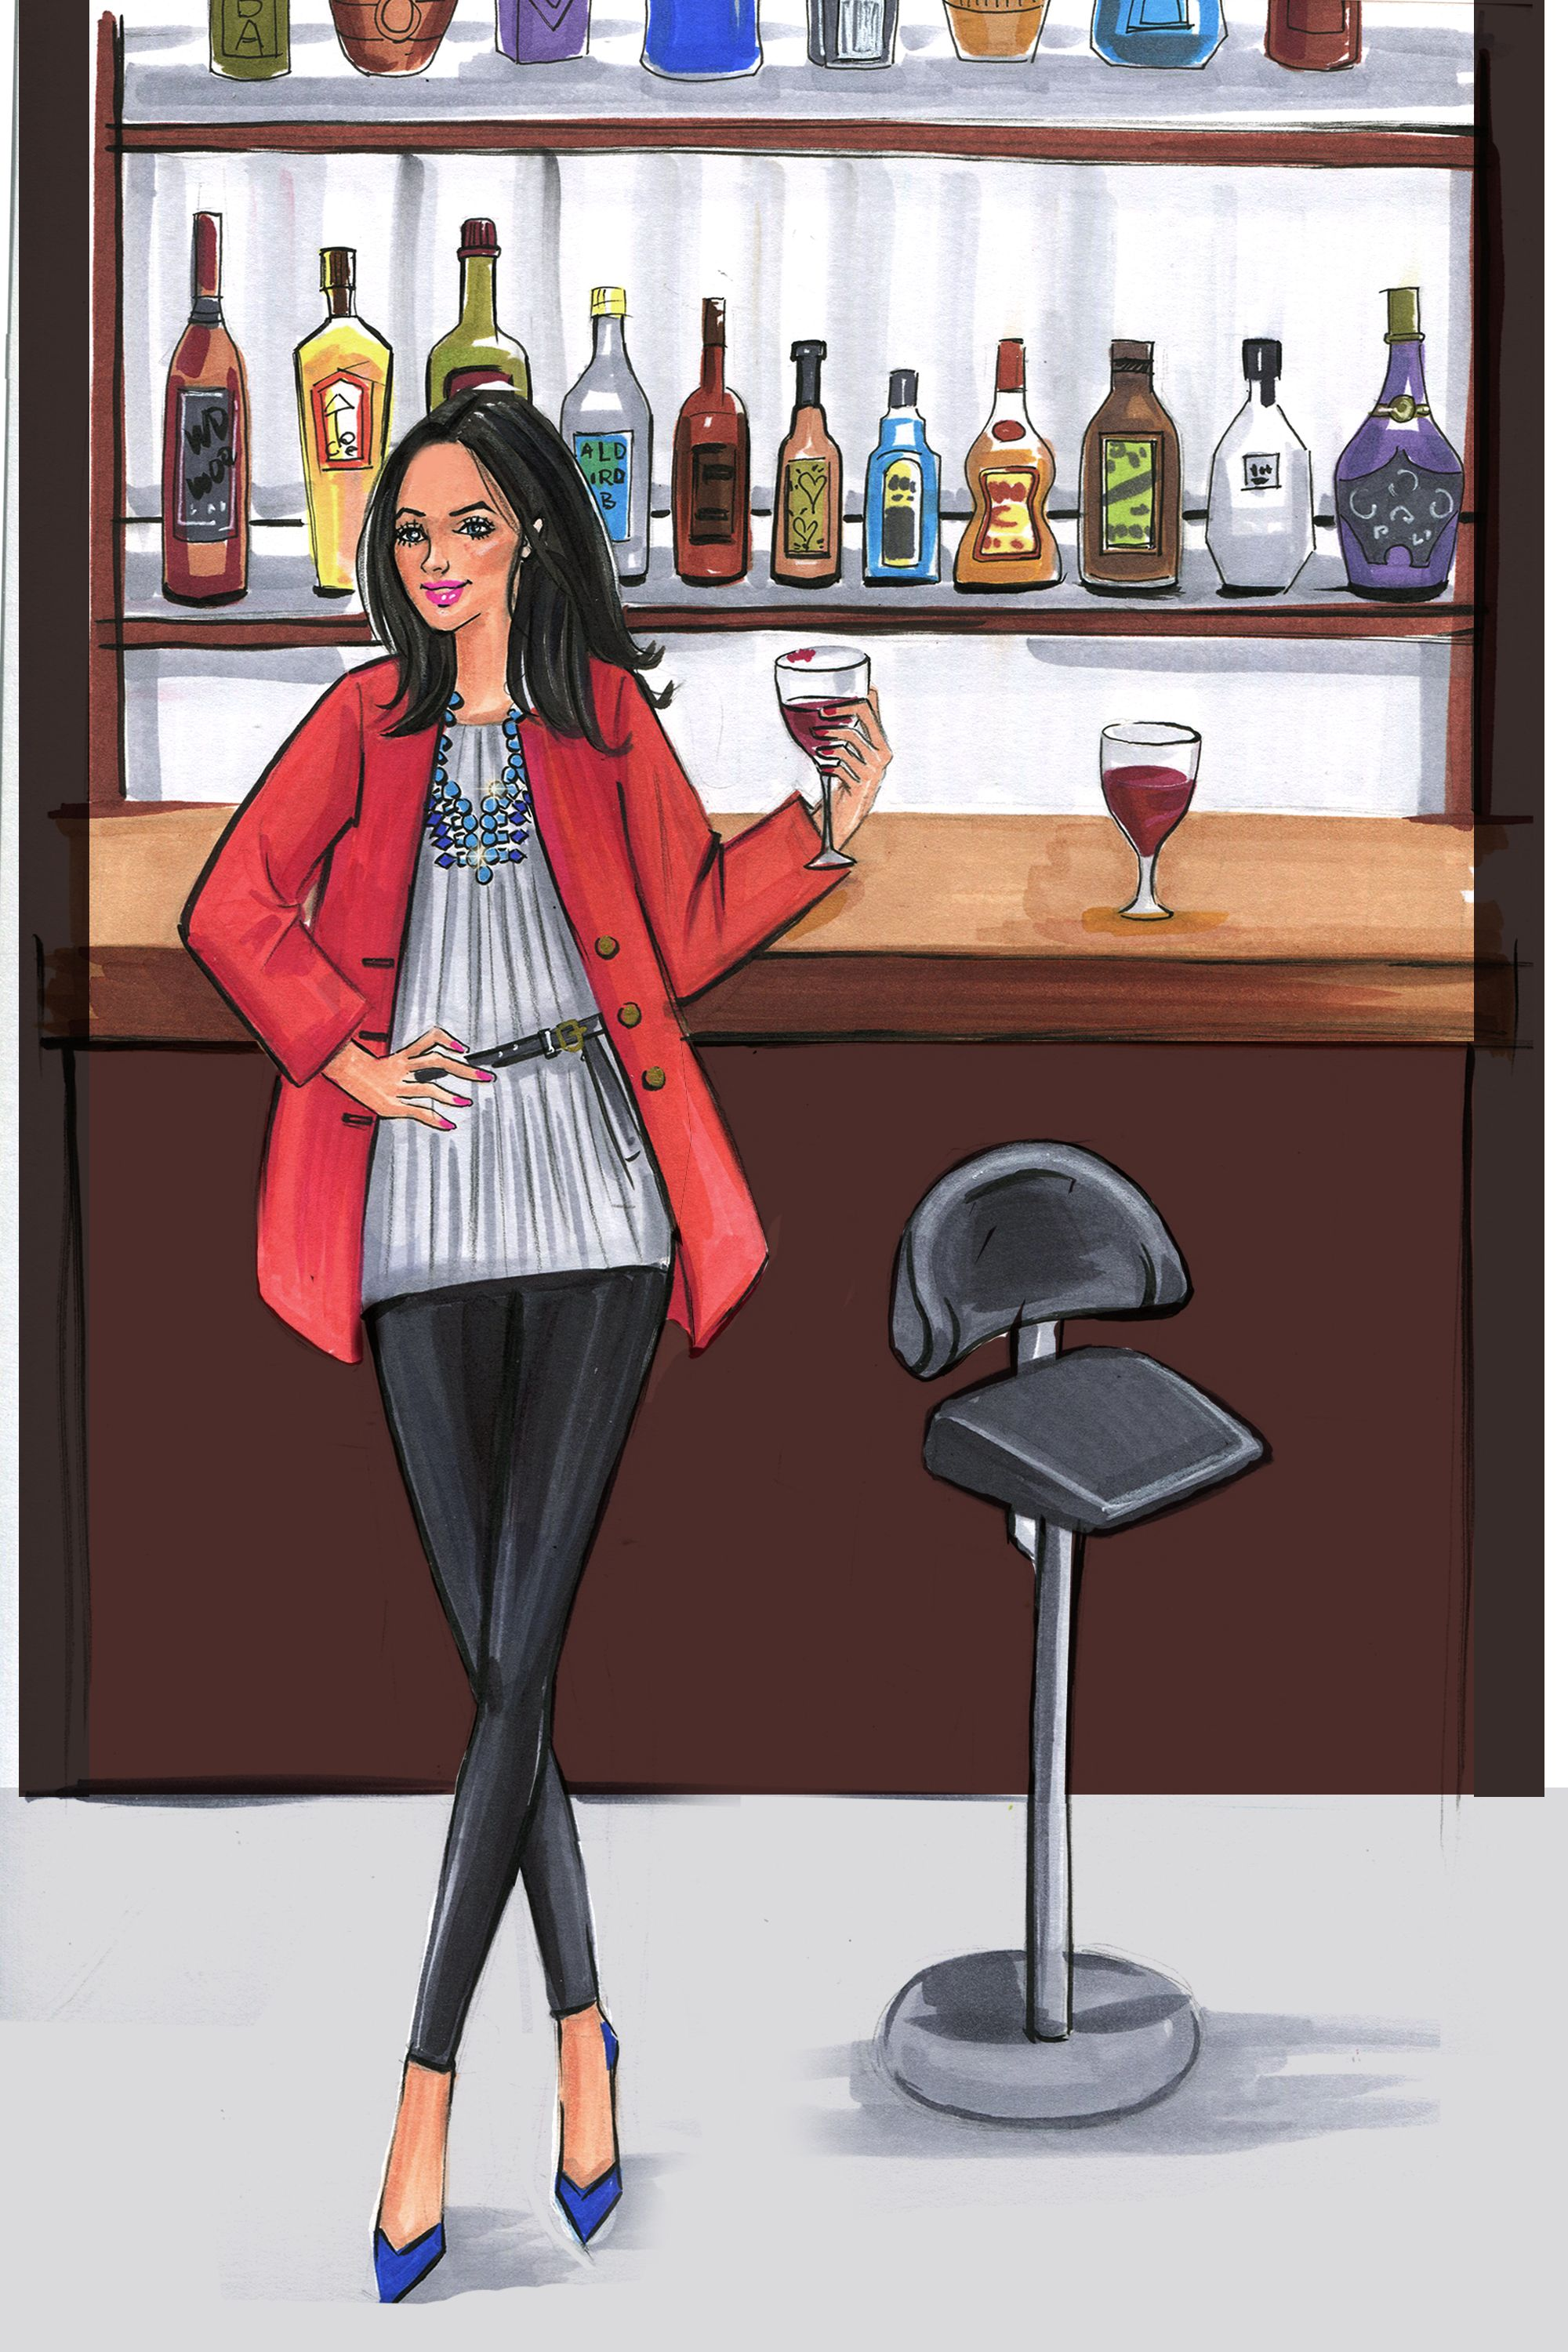 <p>We all know she has to look stylish while eating (and posting food pics) at the latest hotspots. Help your favorite foodie stay on-trend with a statement necklace and chic leggings. </p>